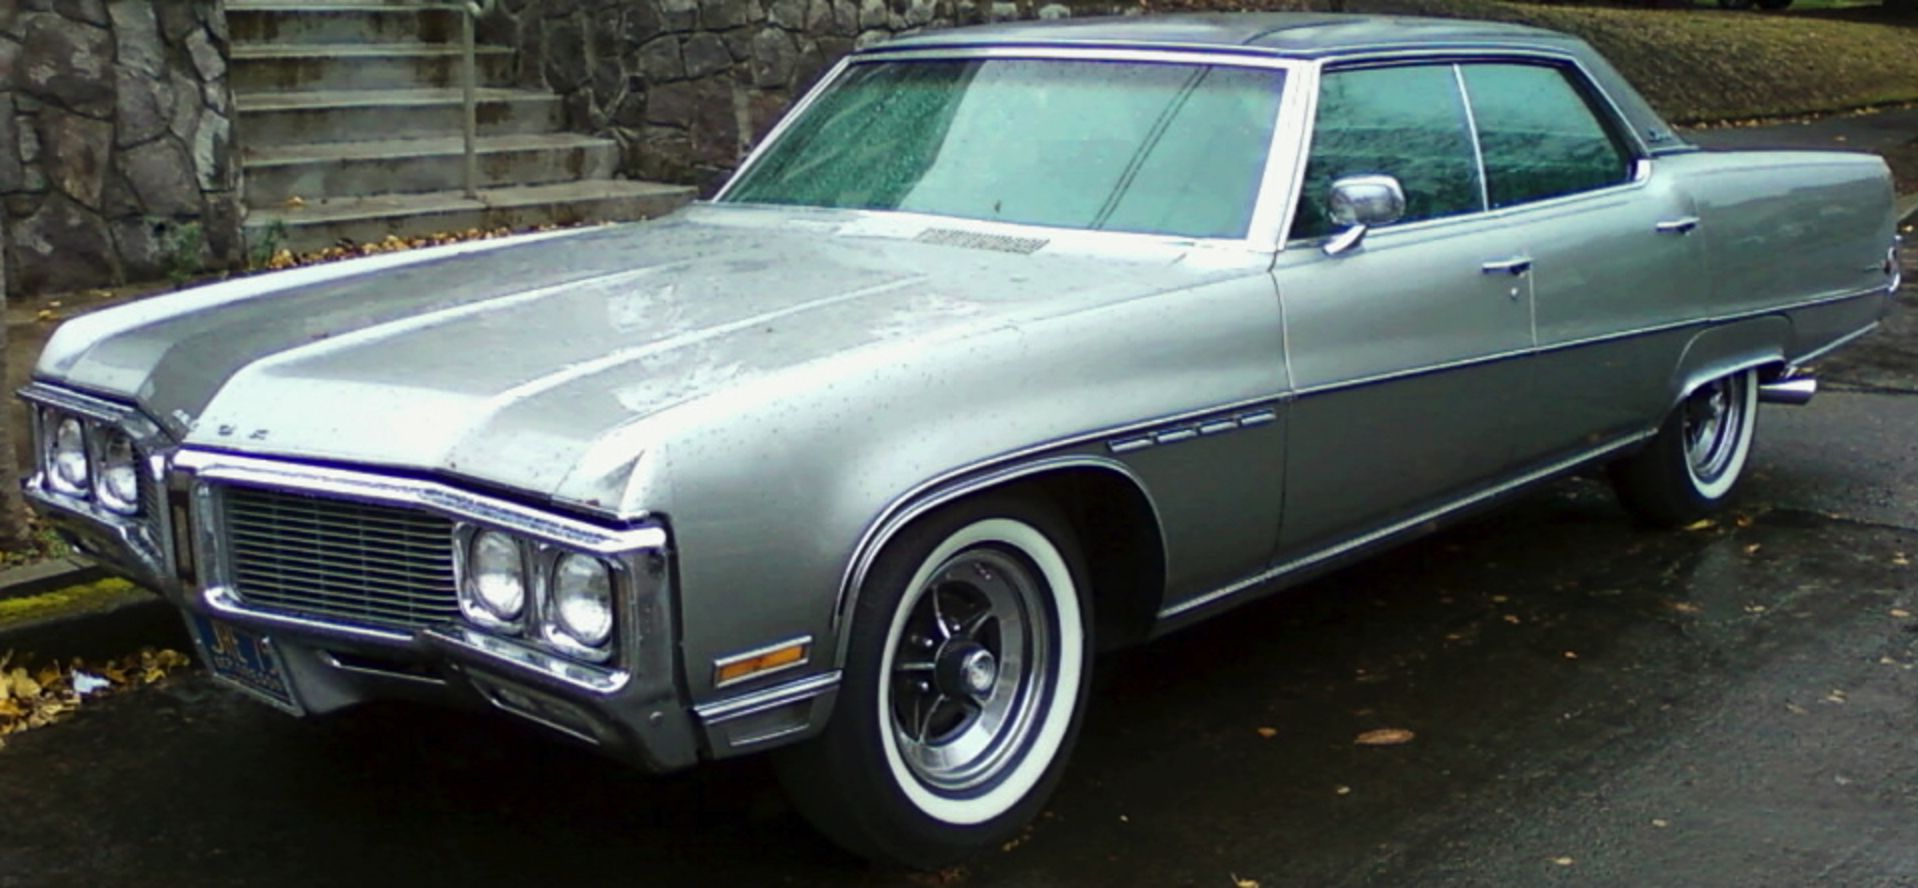 Photos Of Buick Electra Limited Photo Galleries On Flipacars